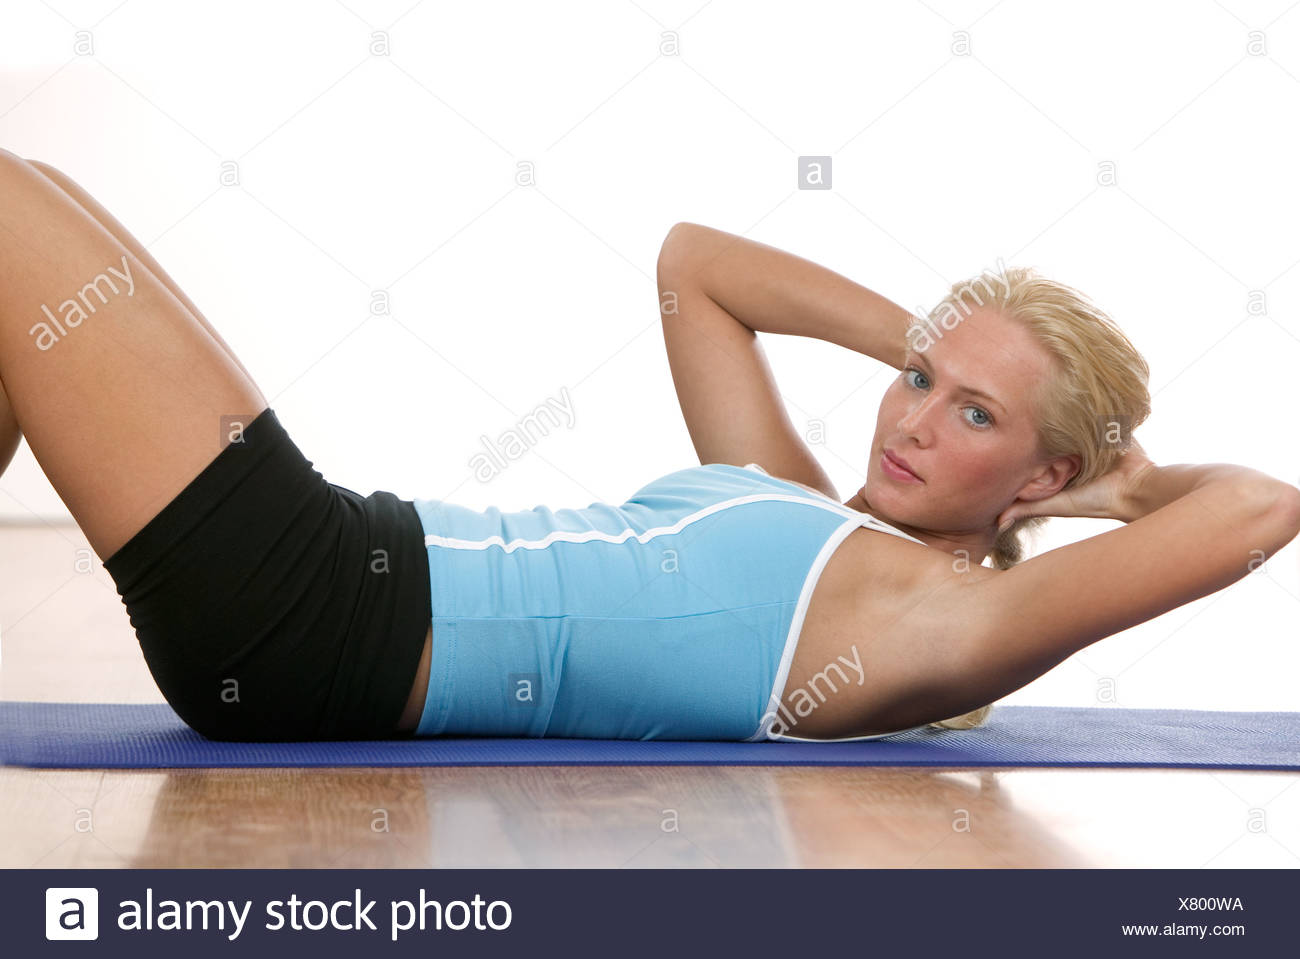 A young woman working out - Stock Image